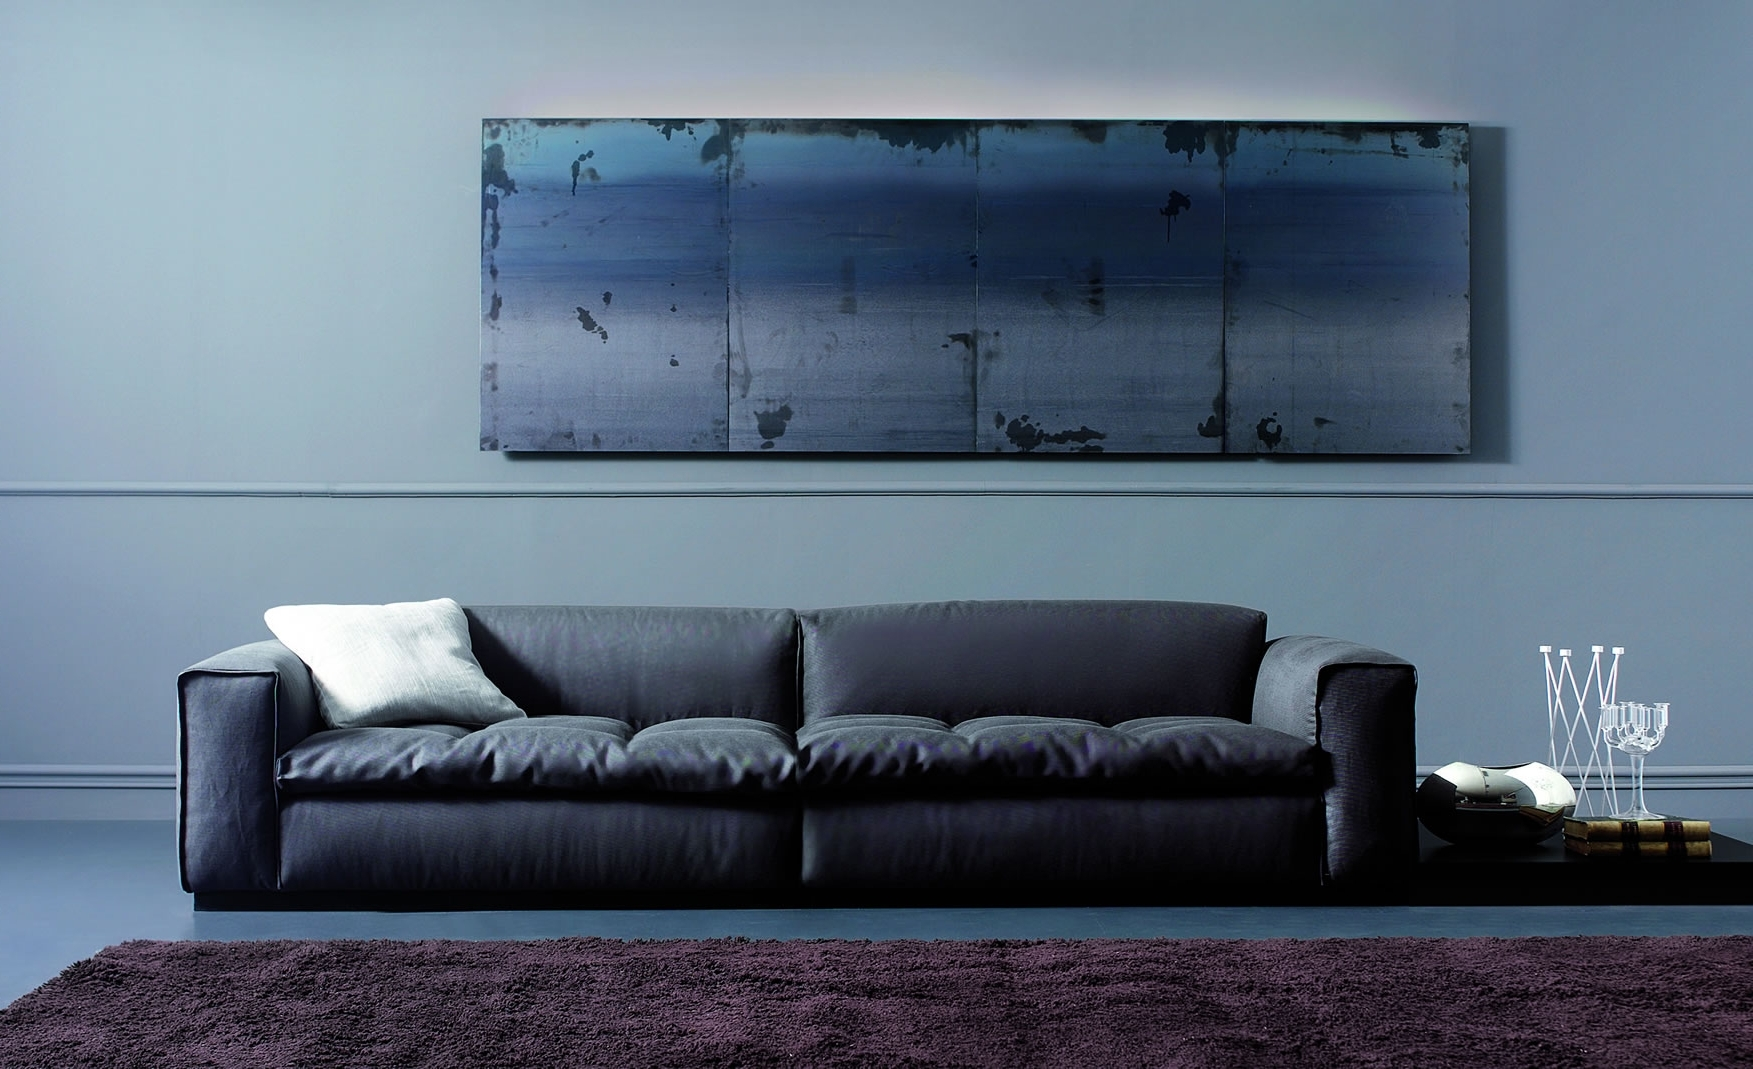 Modern Sofas Intended For Most Recent Italian Sofas At Momentoitalia – Modern Sofas,designer Sofas (View 14 of 15)